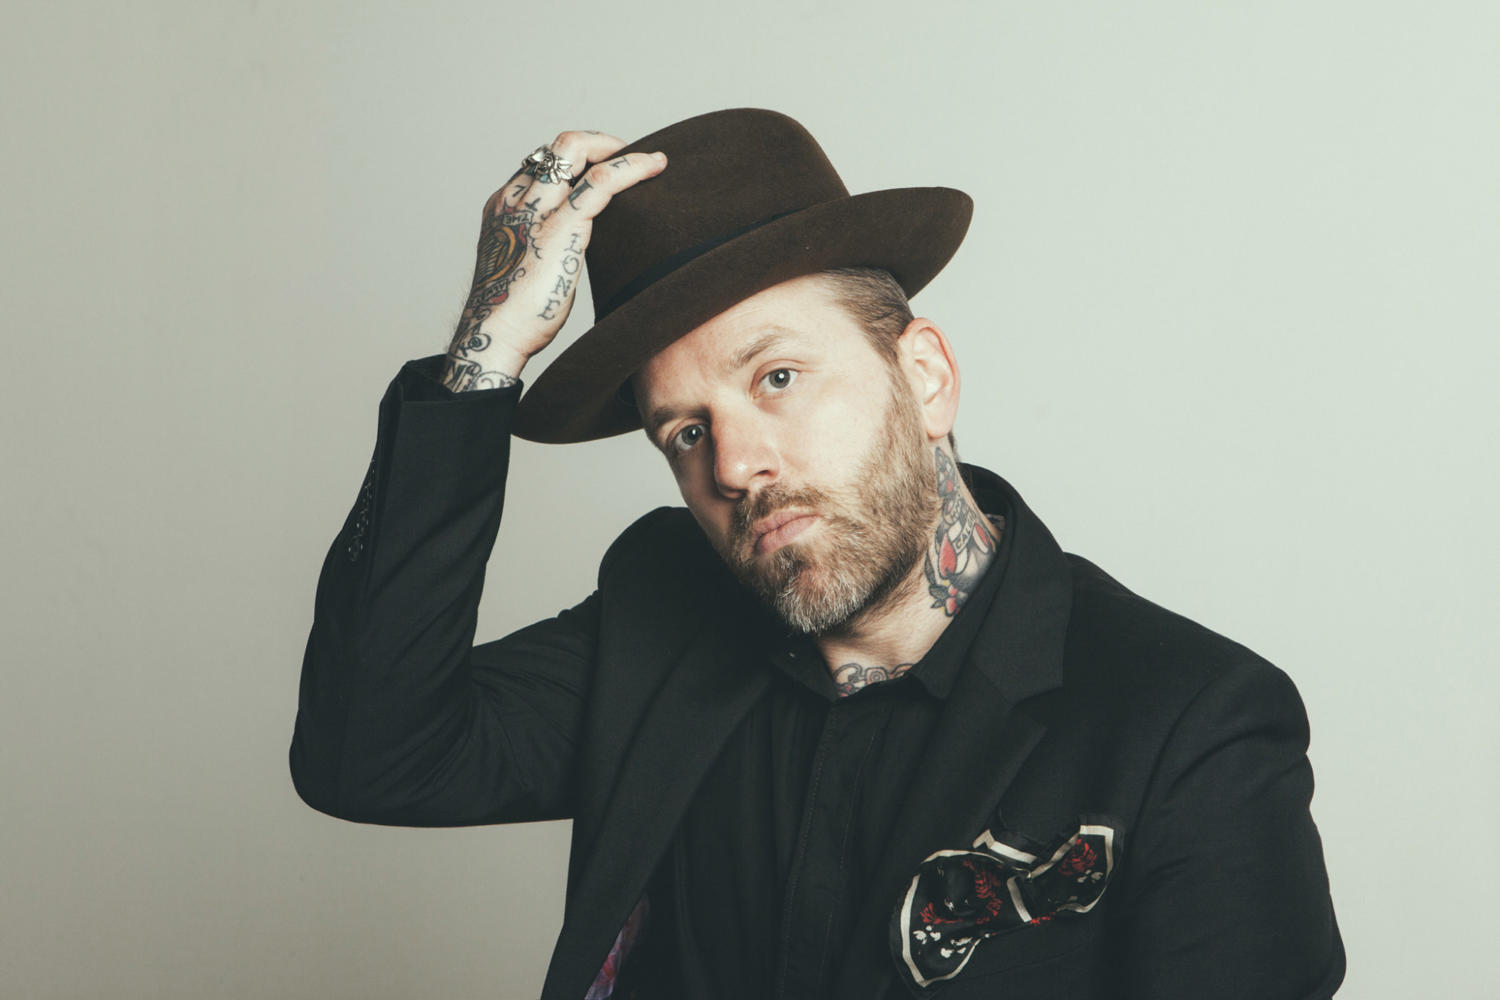 City and Colour showcases new video for 'Lover Come Back'